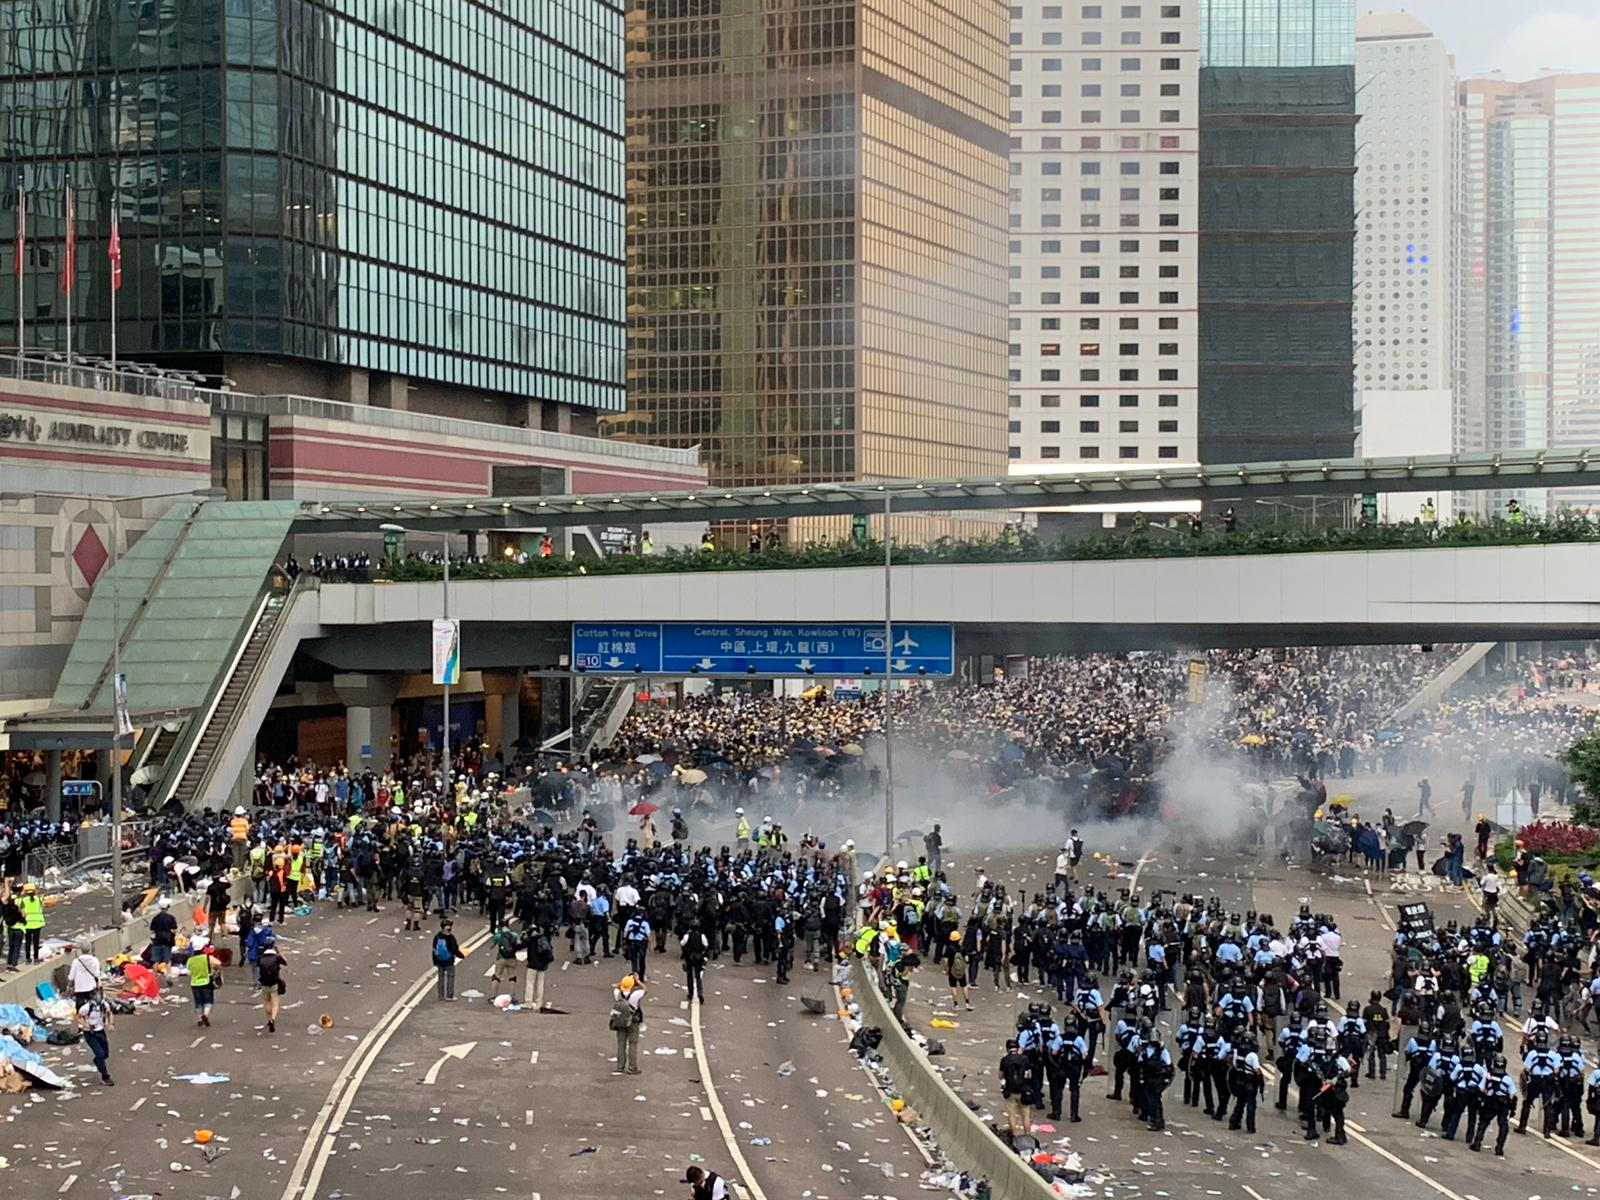 Protesters being physically expelled from Harcourt Road by police on Wednesday using tear gas and riot gear.